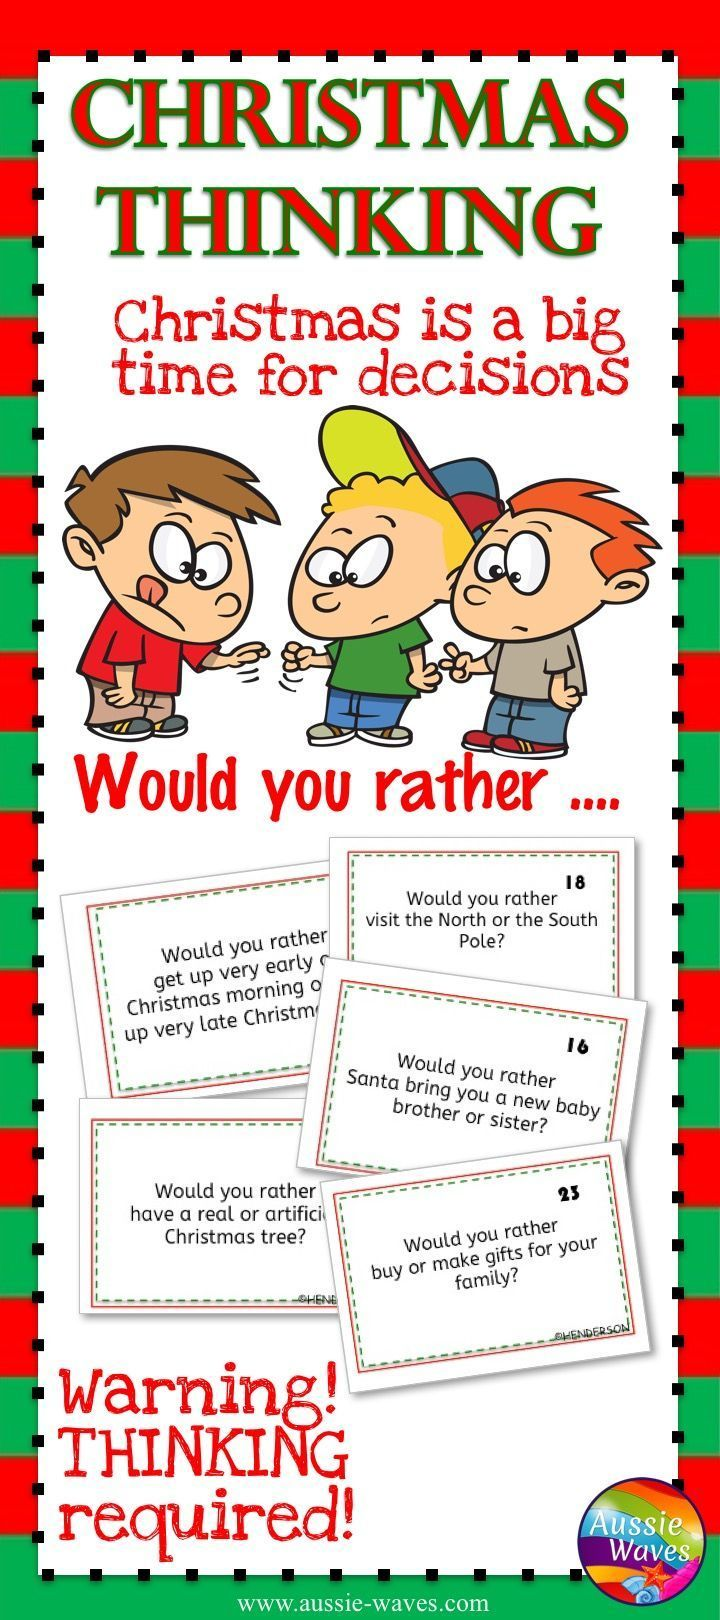 Educational Christmas Resource. Printable fun for kids! What would you rather?